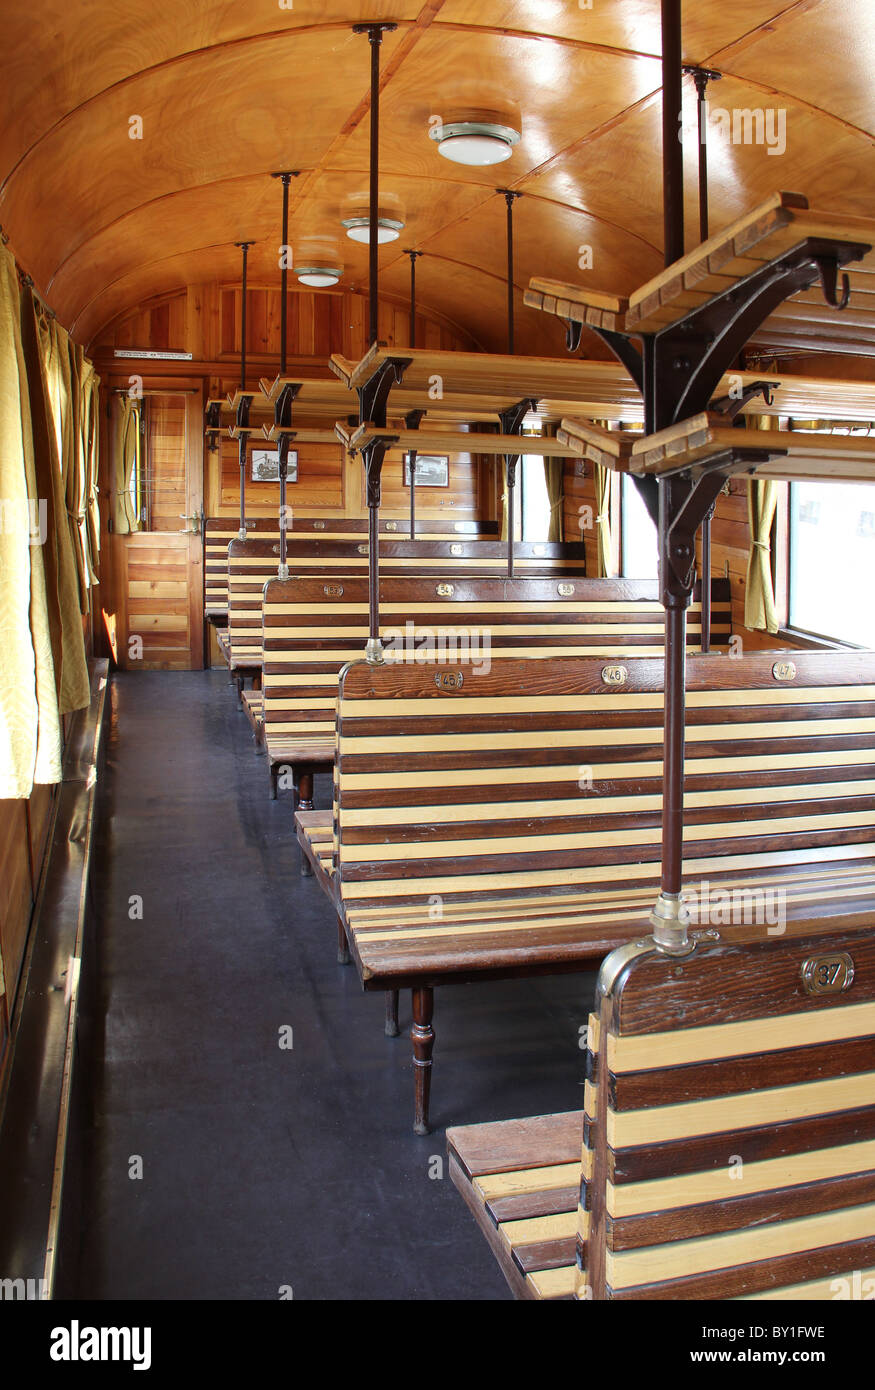 Old Wooden Train Seat Stock Photos Amp Old Wooden Train Seat